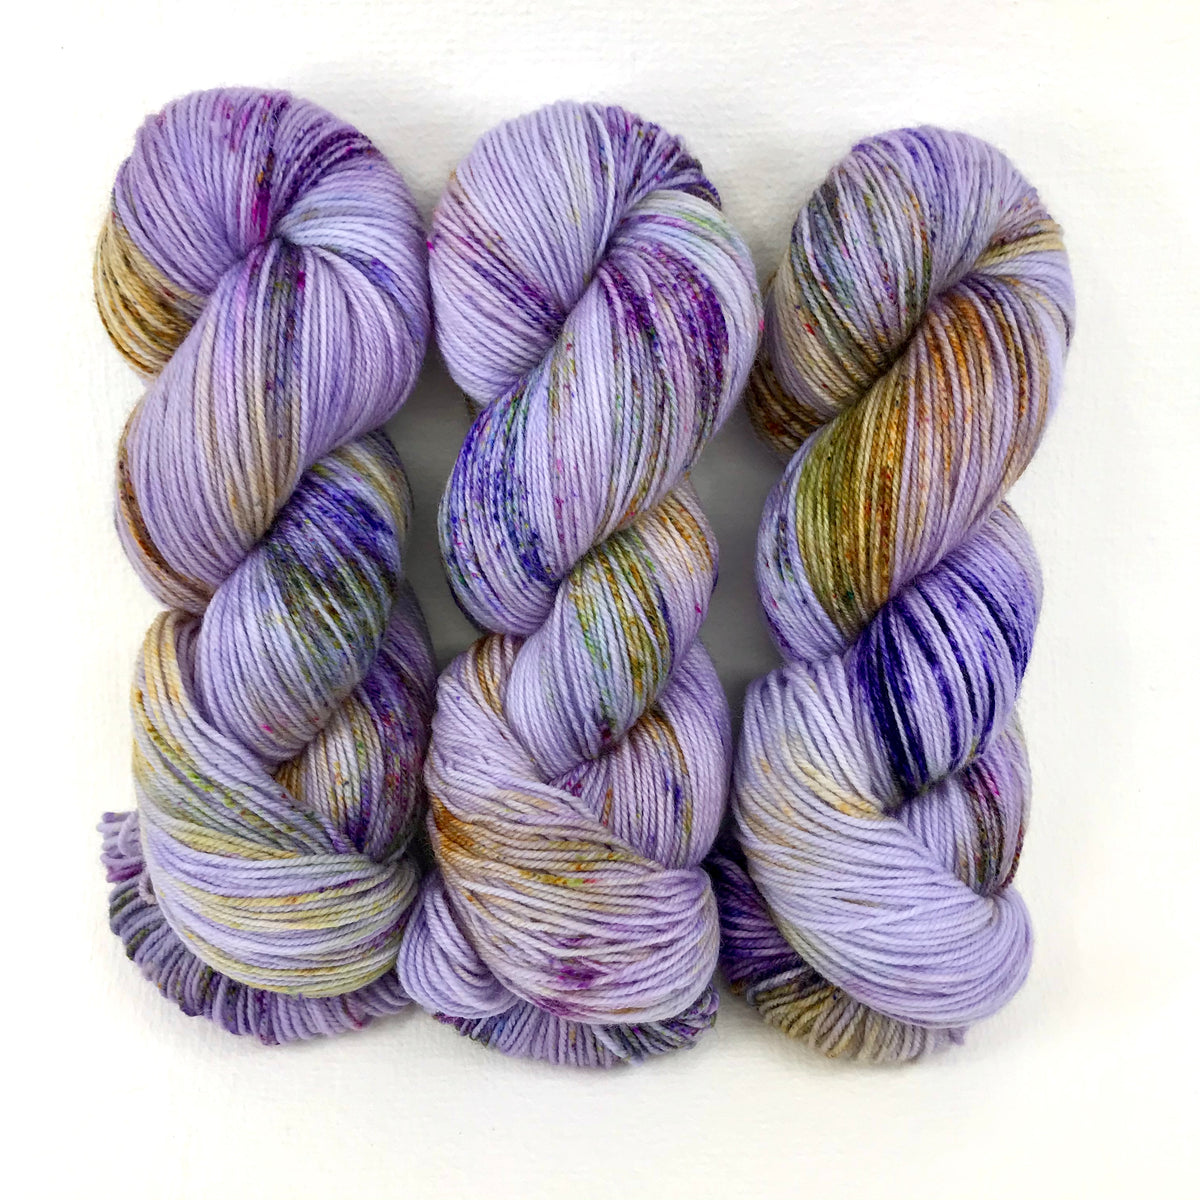 Lavender Fields Forever - Little Nettle Soft Fingering - Dyed Stock